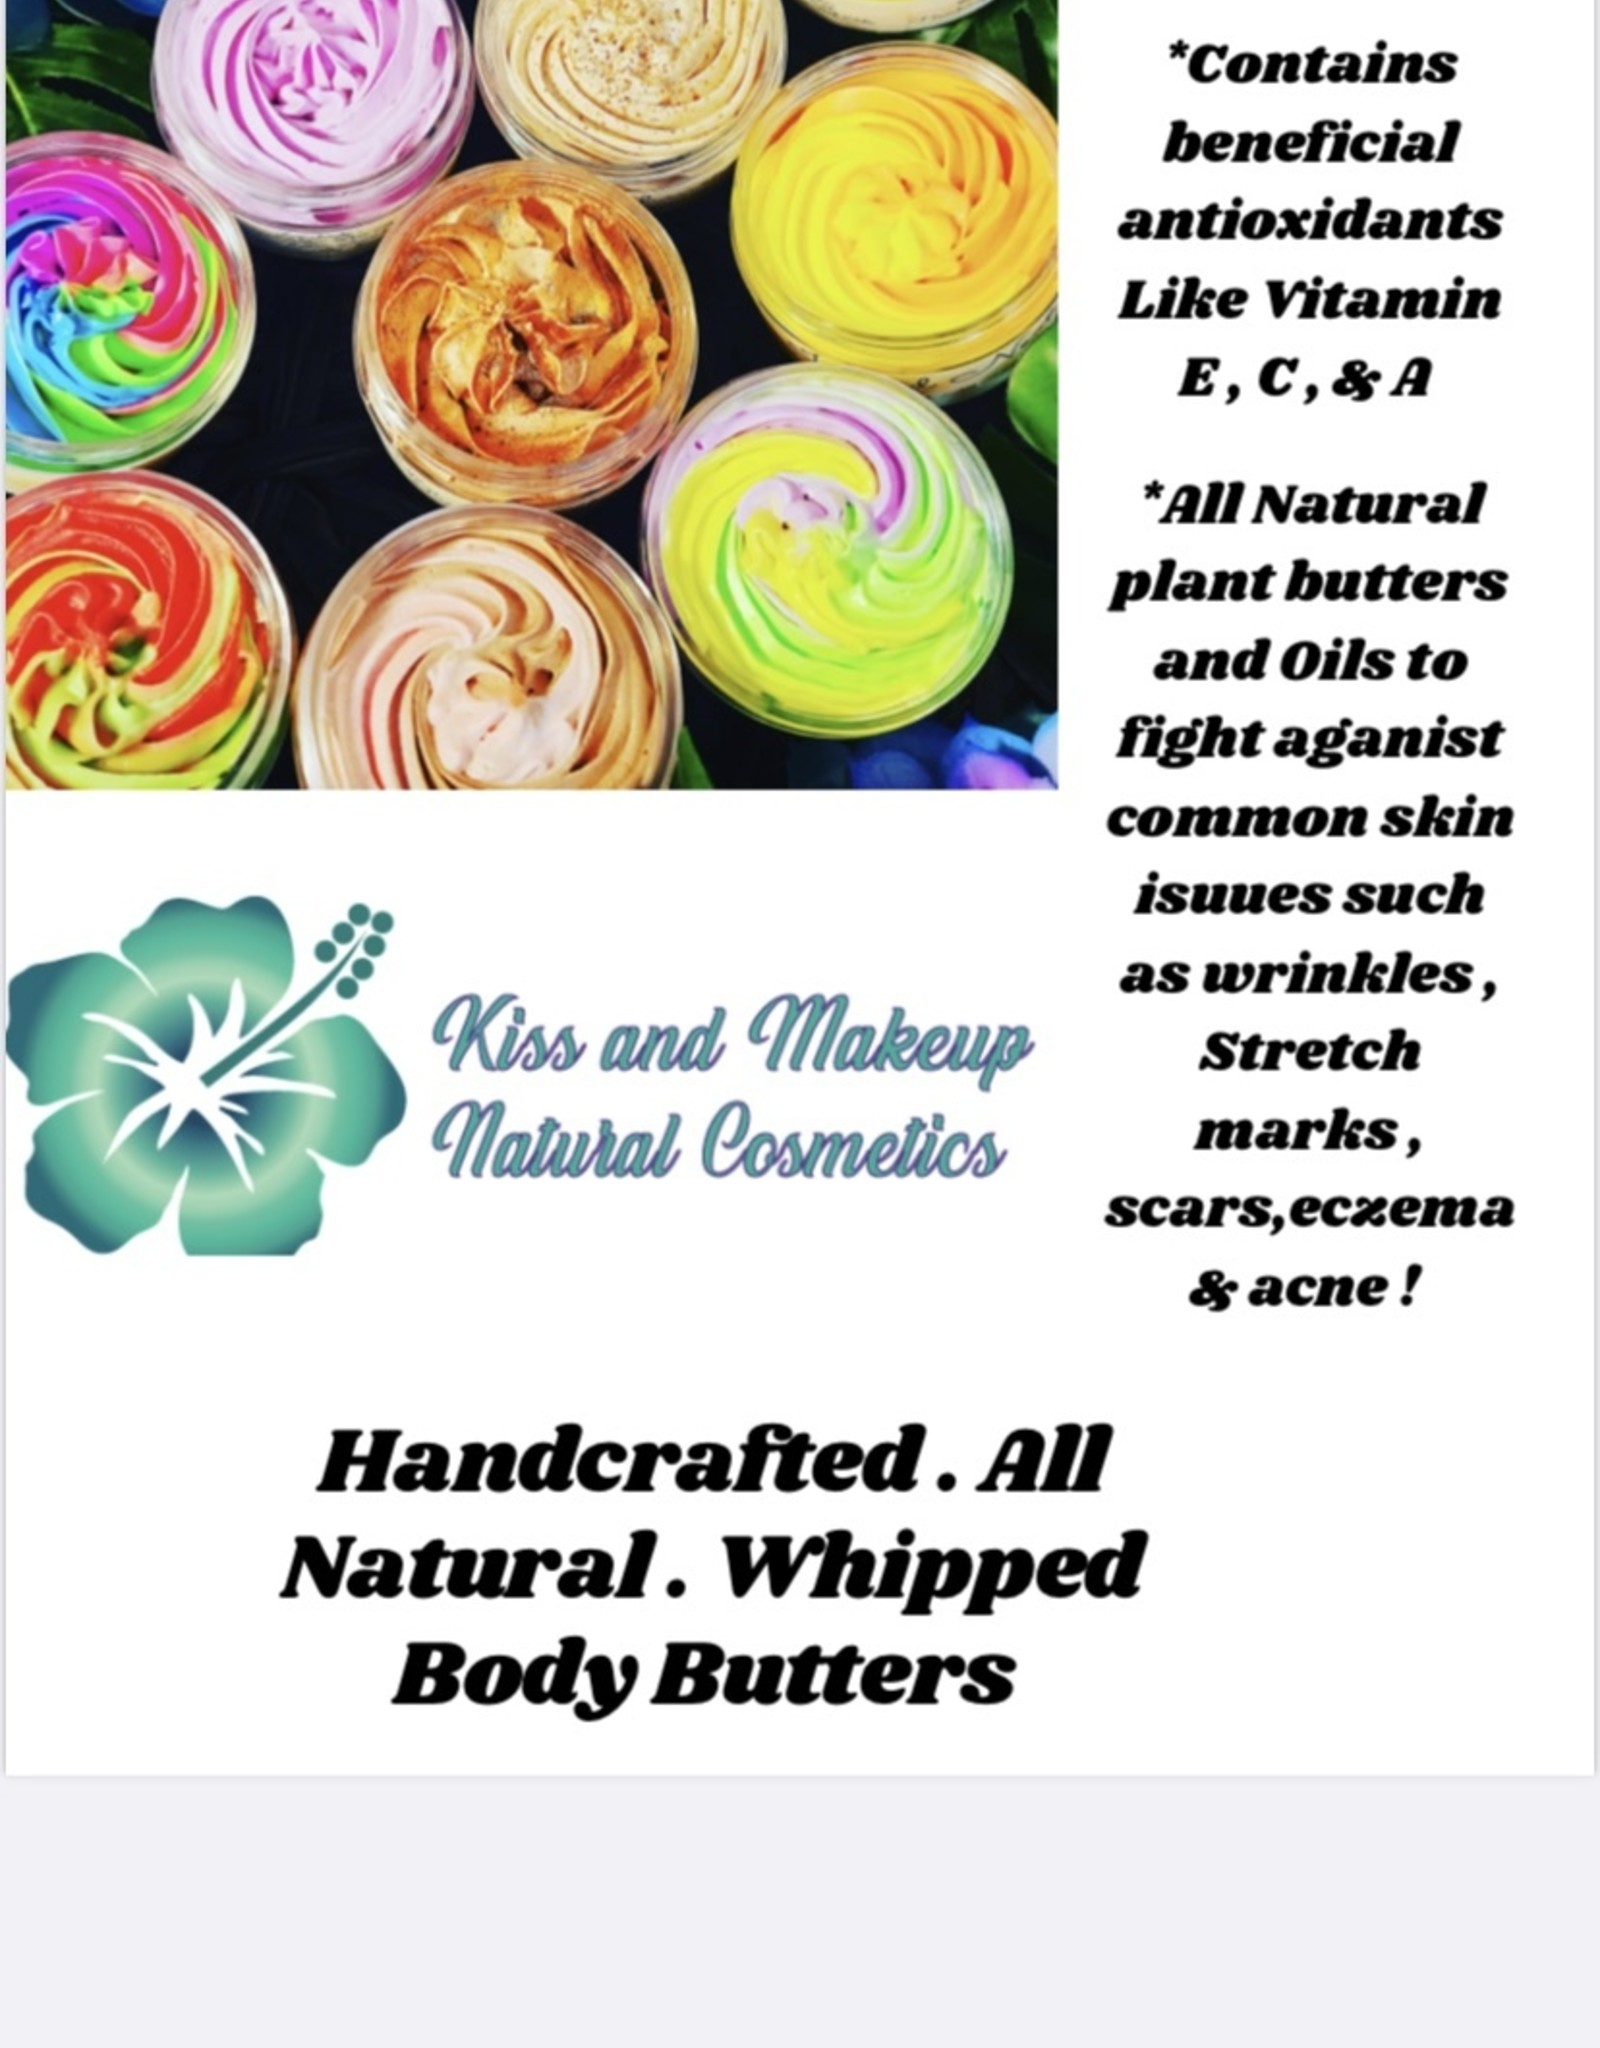 KISS AND MAKEUP NATURAL COSMETICS Whipped  Body Butter-4oz Wild Berry Mimosa